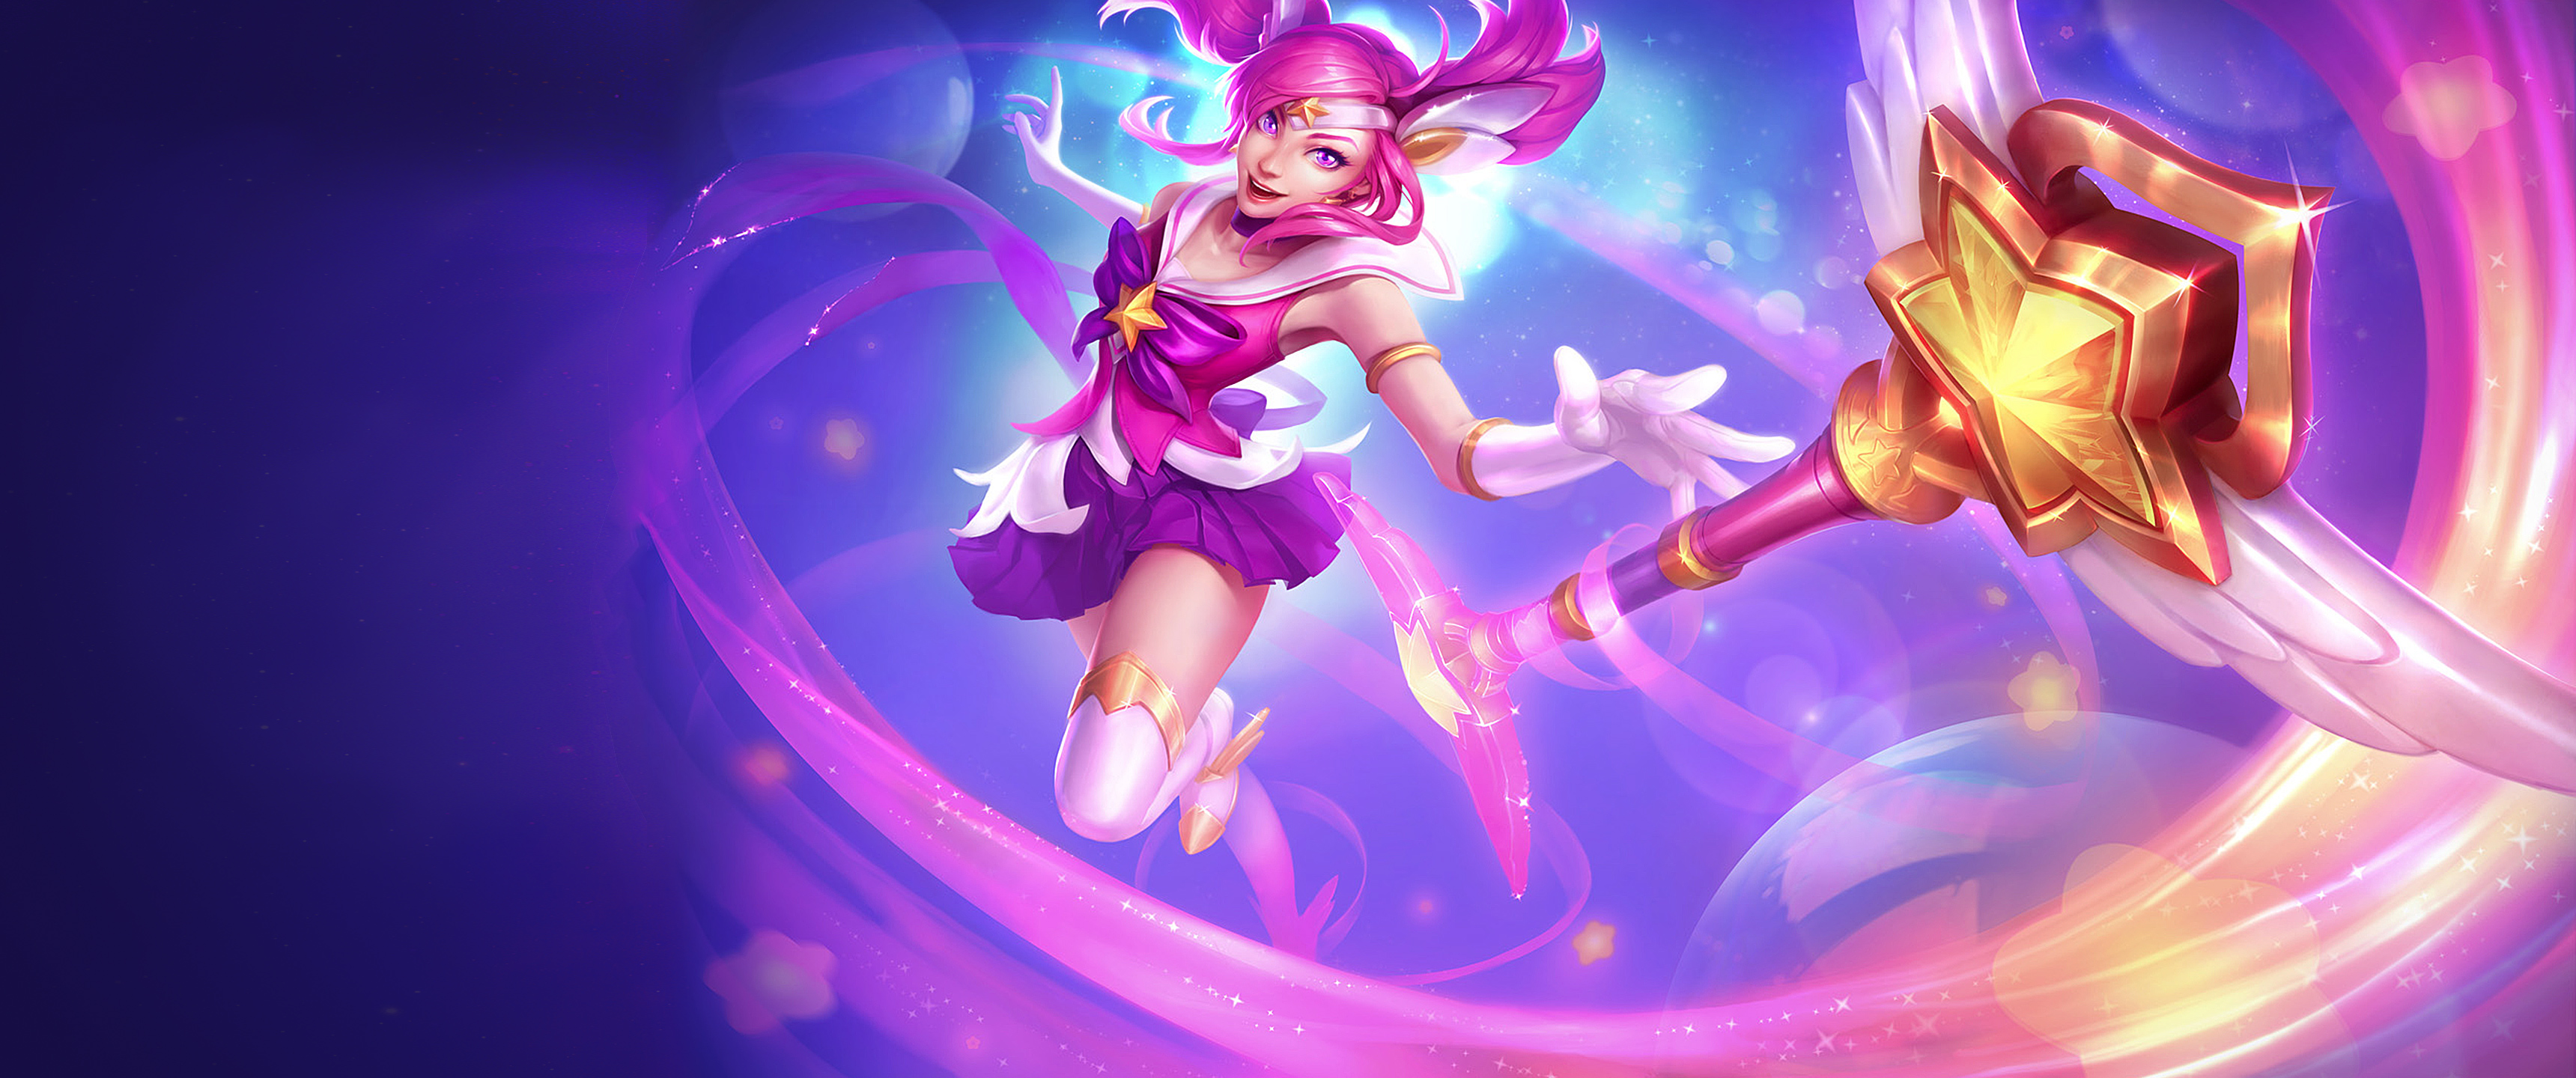 120 Lux League Of Legends Hd Wallpapers Background Images